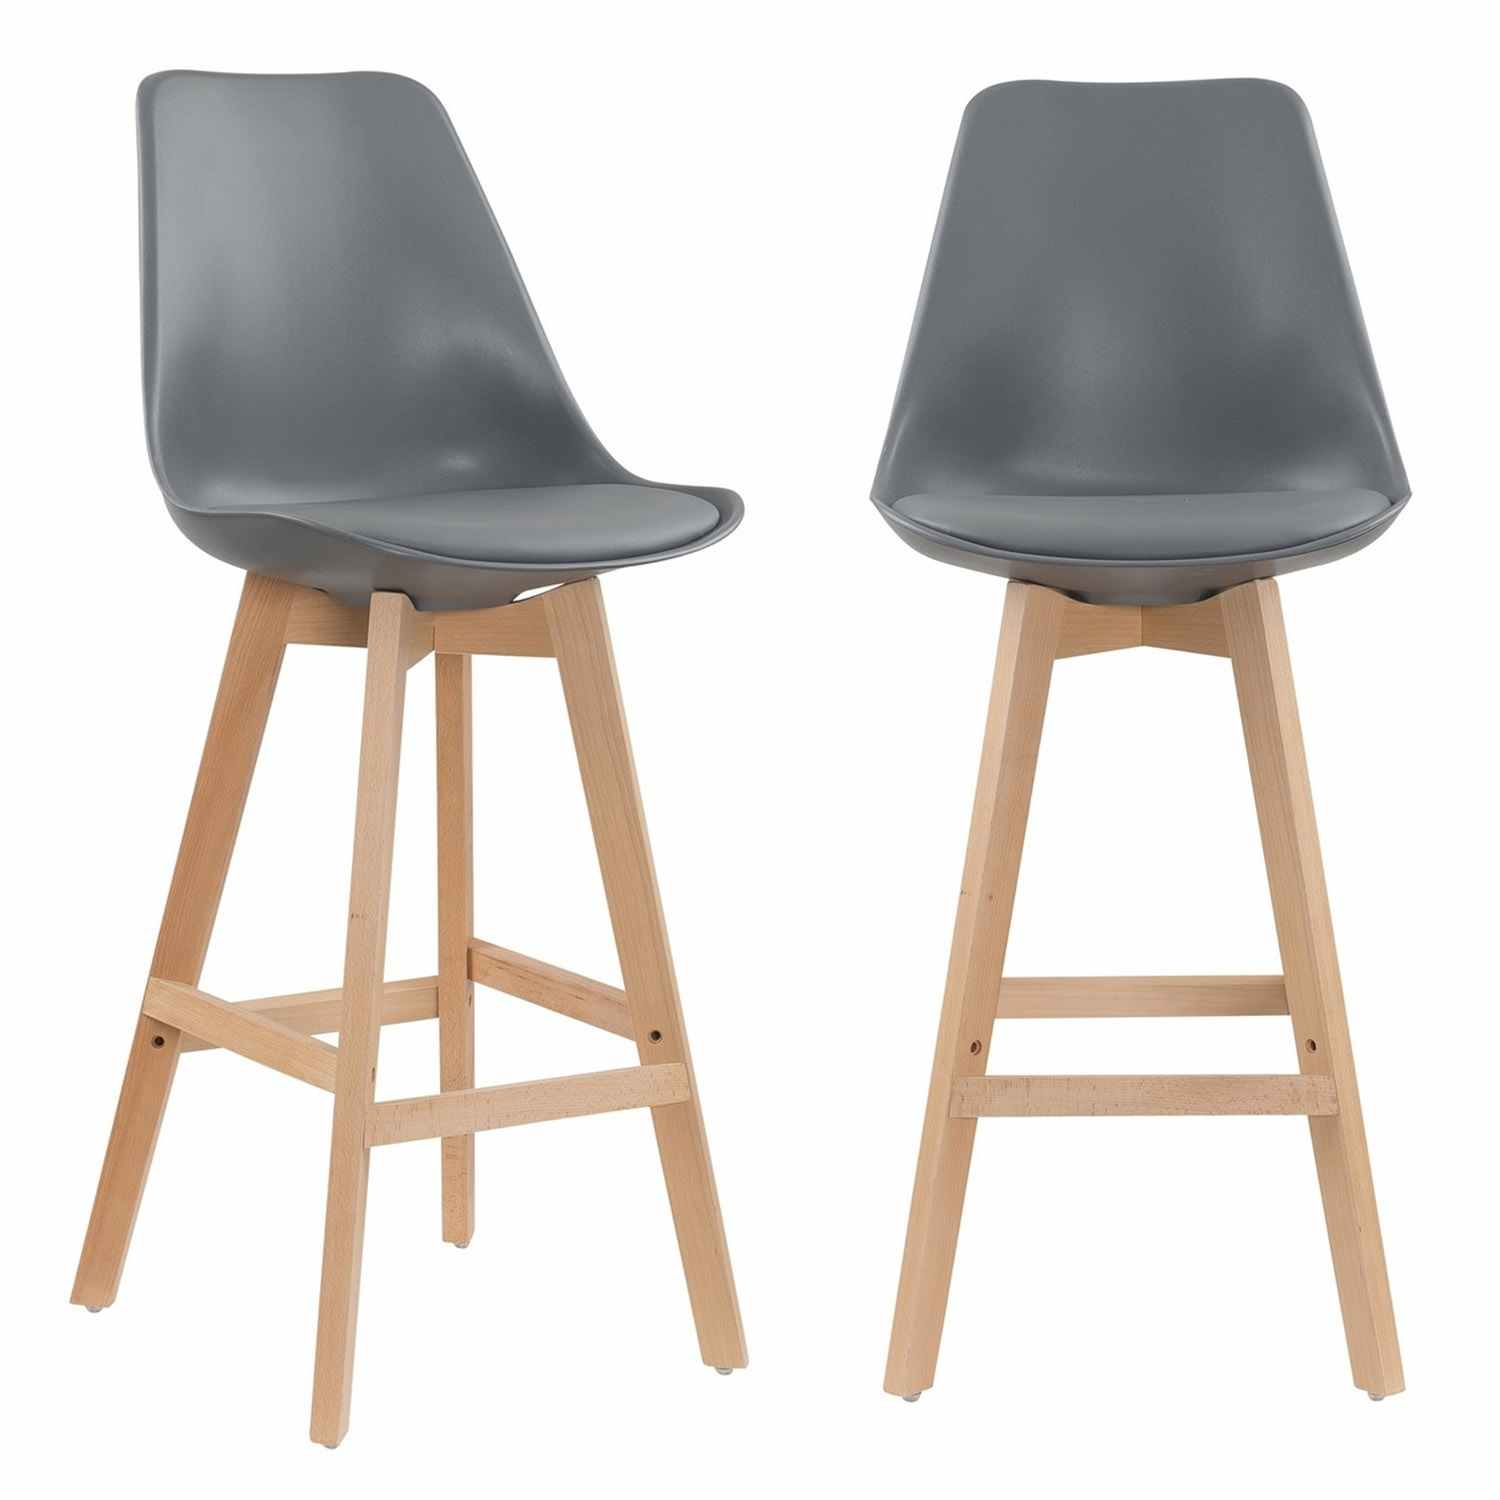 deco in paris lot de 2 tabourets de bar scandinave gris gala 2xtabouret gala gris. Black Bedroom Furniture Sets. Home Design Ideas